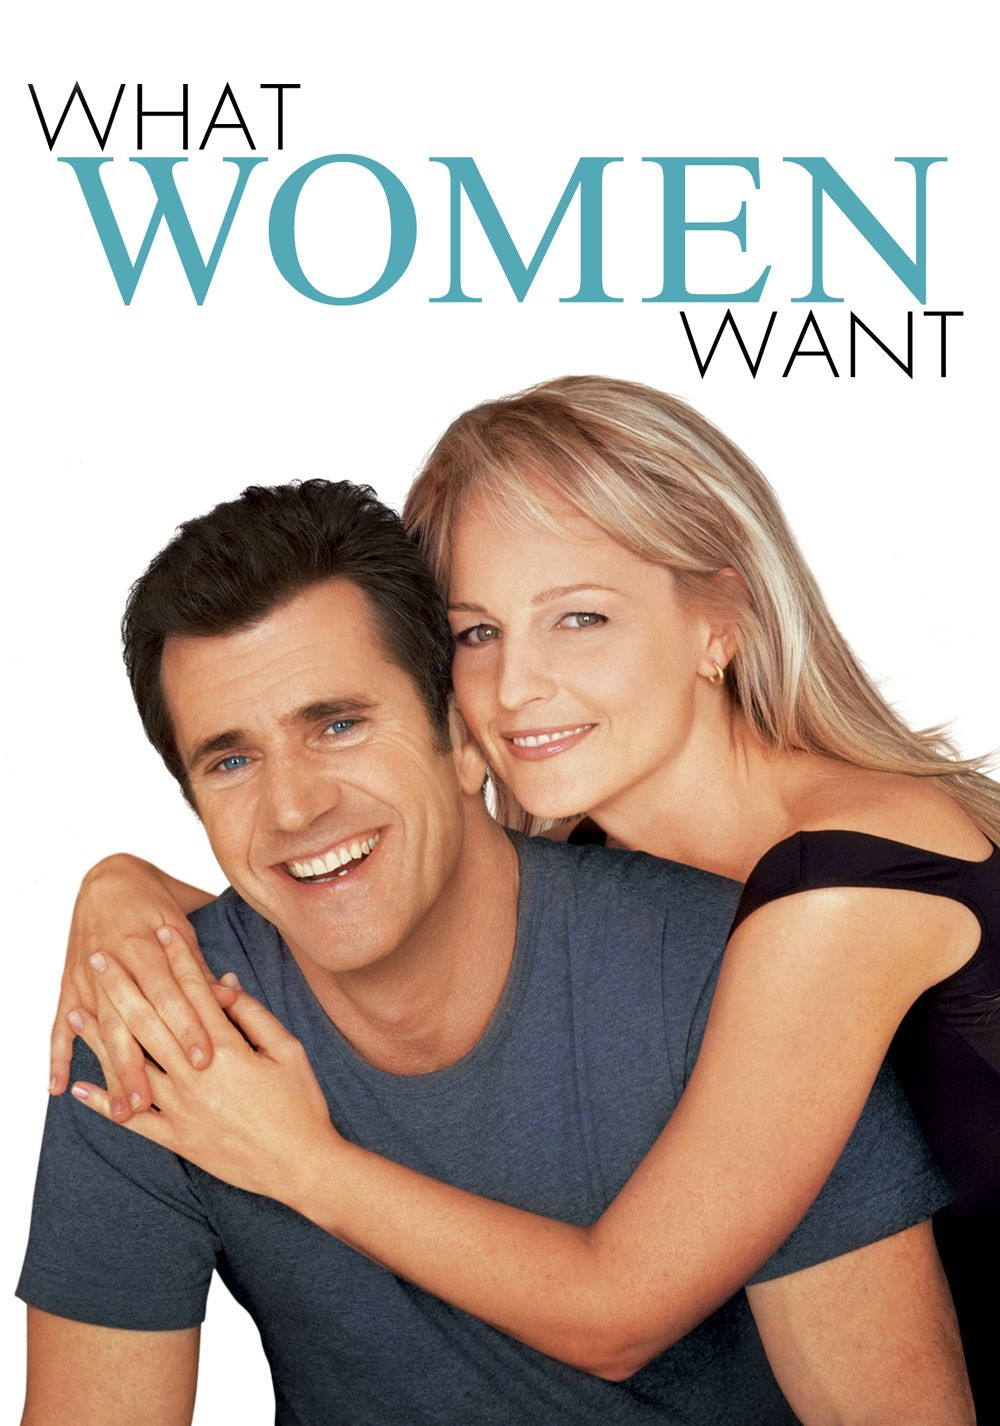 What Women Want 2000 He Has The Power To Hear Everything Women Are Thinking Finally A Man Is Listening What Women Want Full Movies Online Free Women